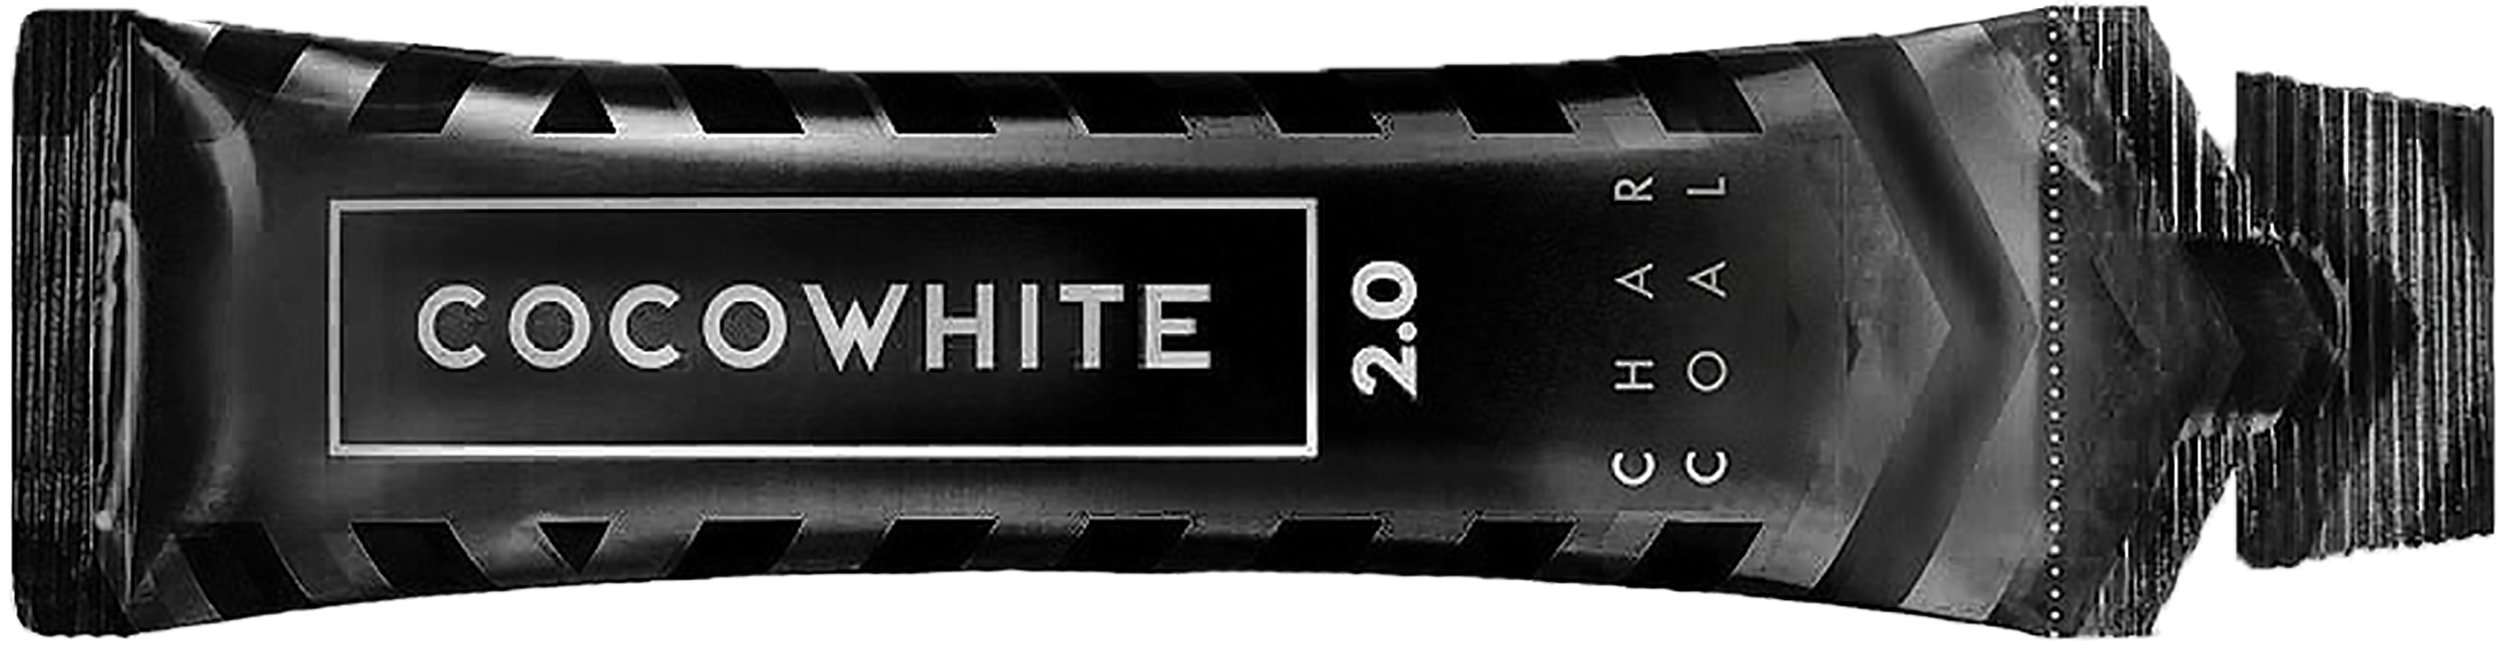 Cocowhite 2.0 - Charcoal // oil pulling & tooth whitening in one.